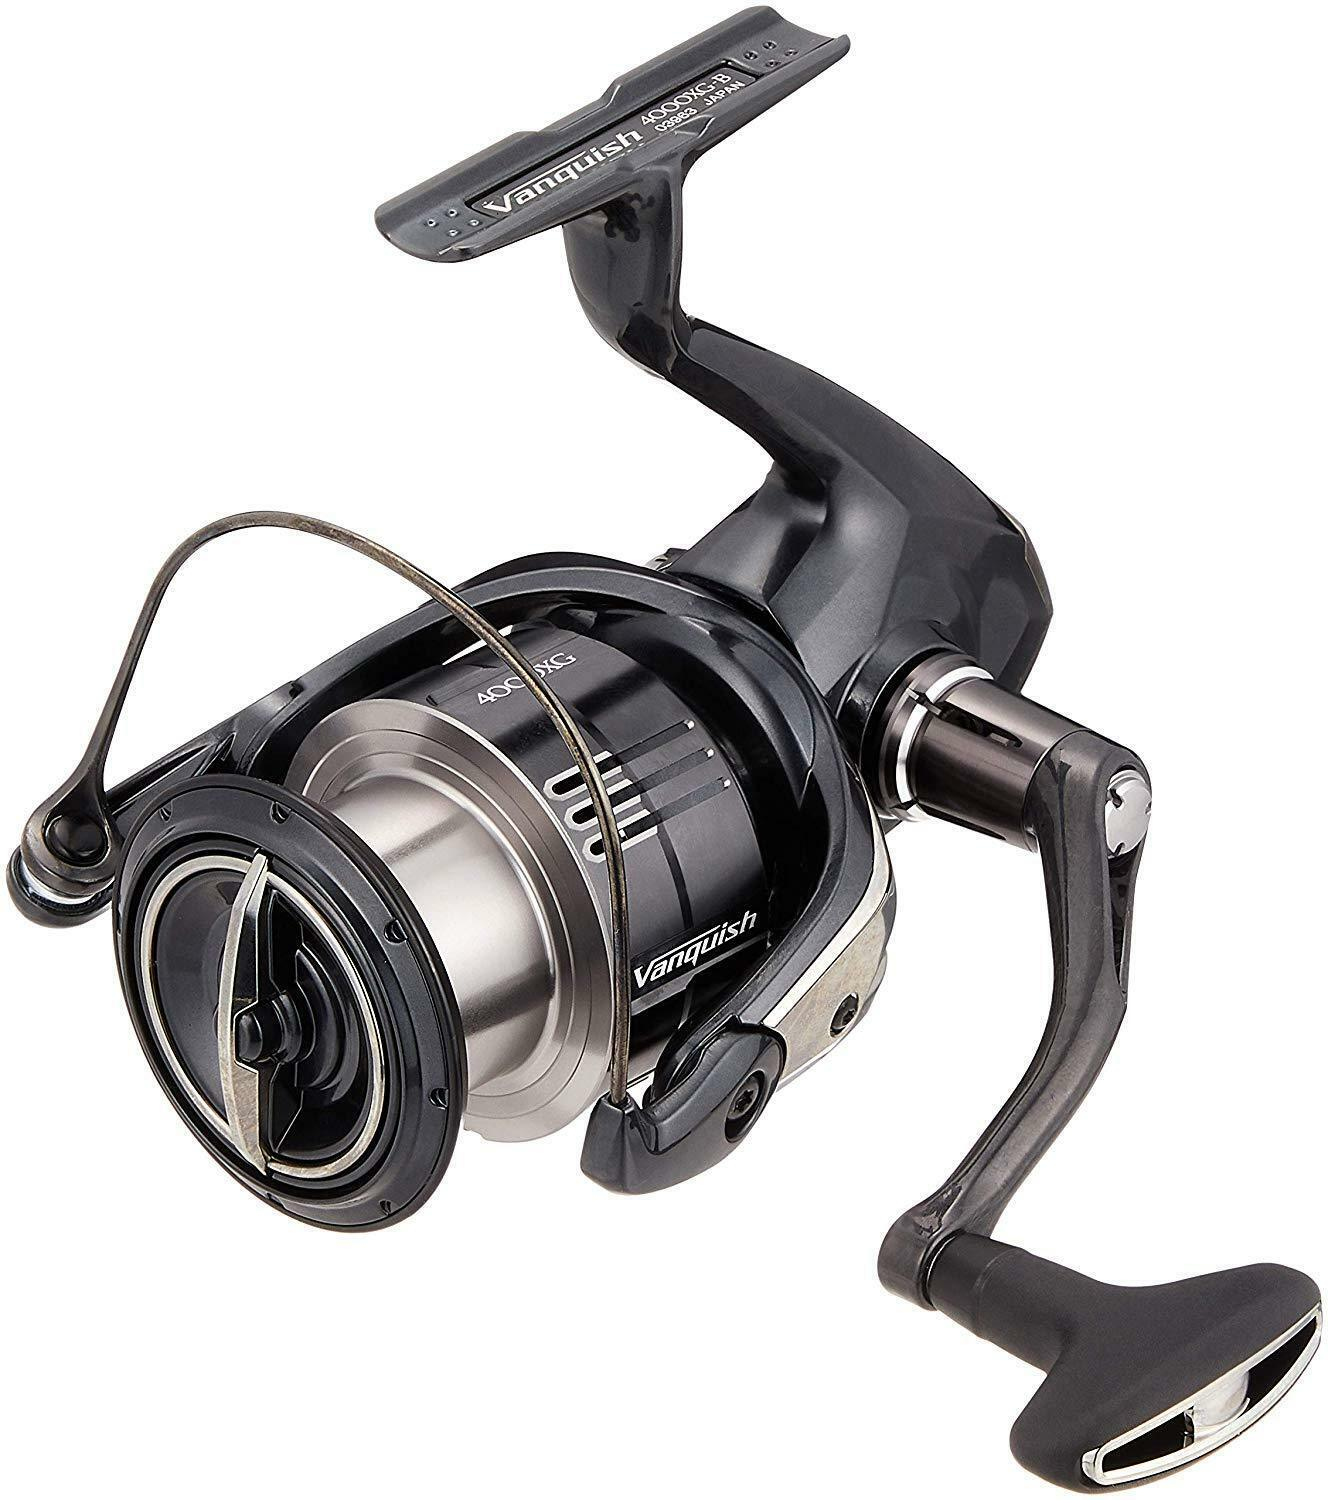 SHIMANO 19 Vanquish 4000XG Spinning Reel Extra High Gear New in Box